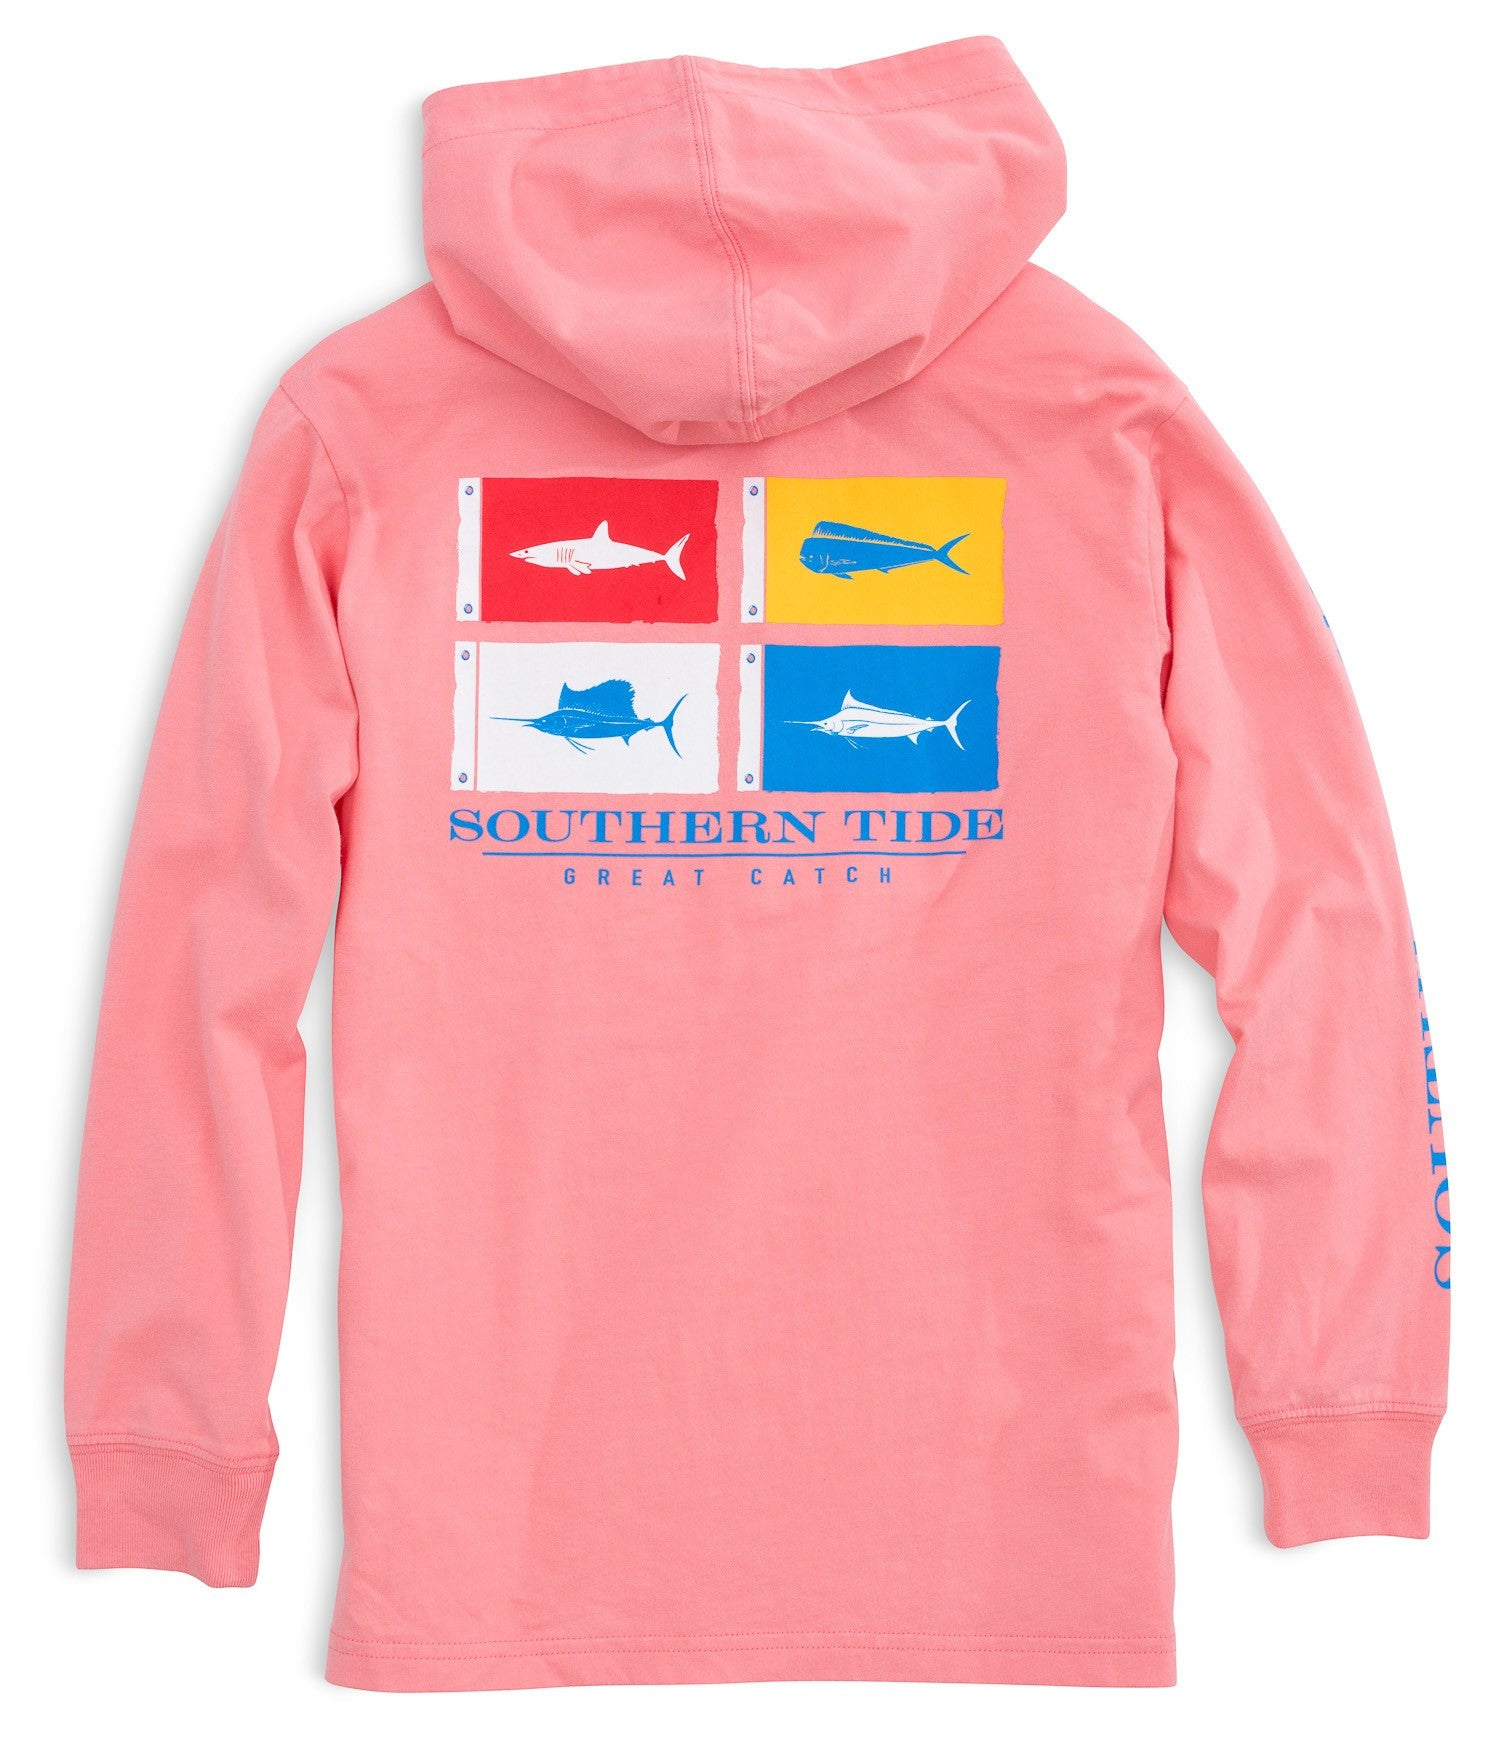 Southern Tide Kids Catch Flags Long Sleeve Hoodie T-shirt - Light Coral Back View